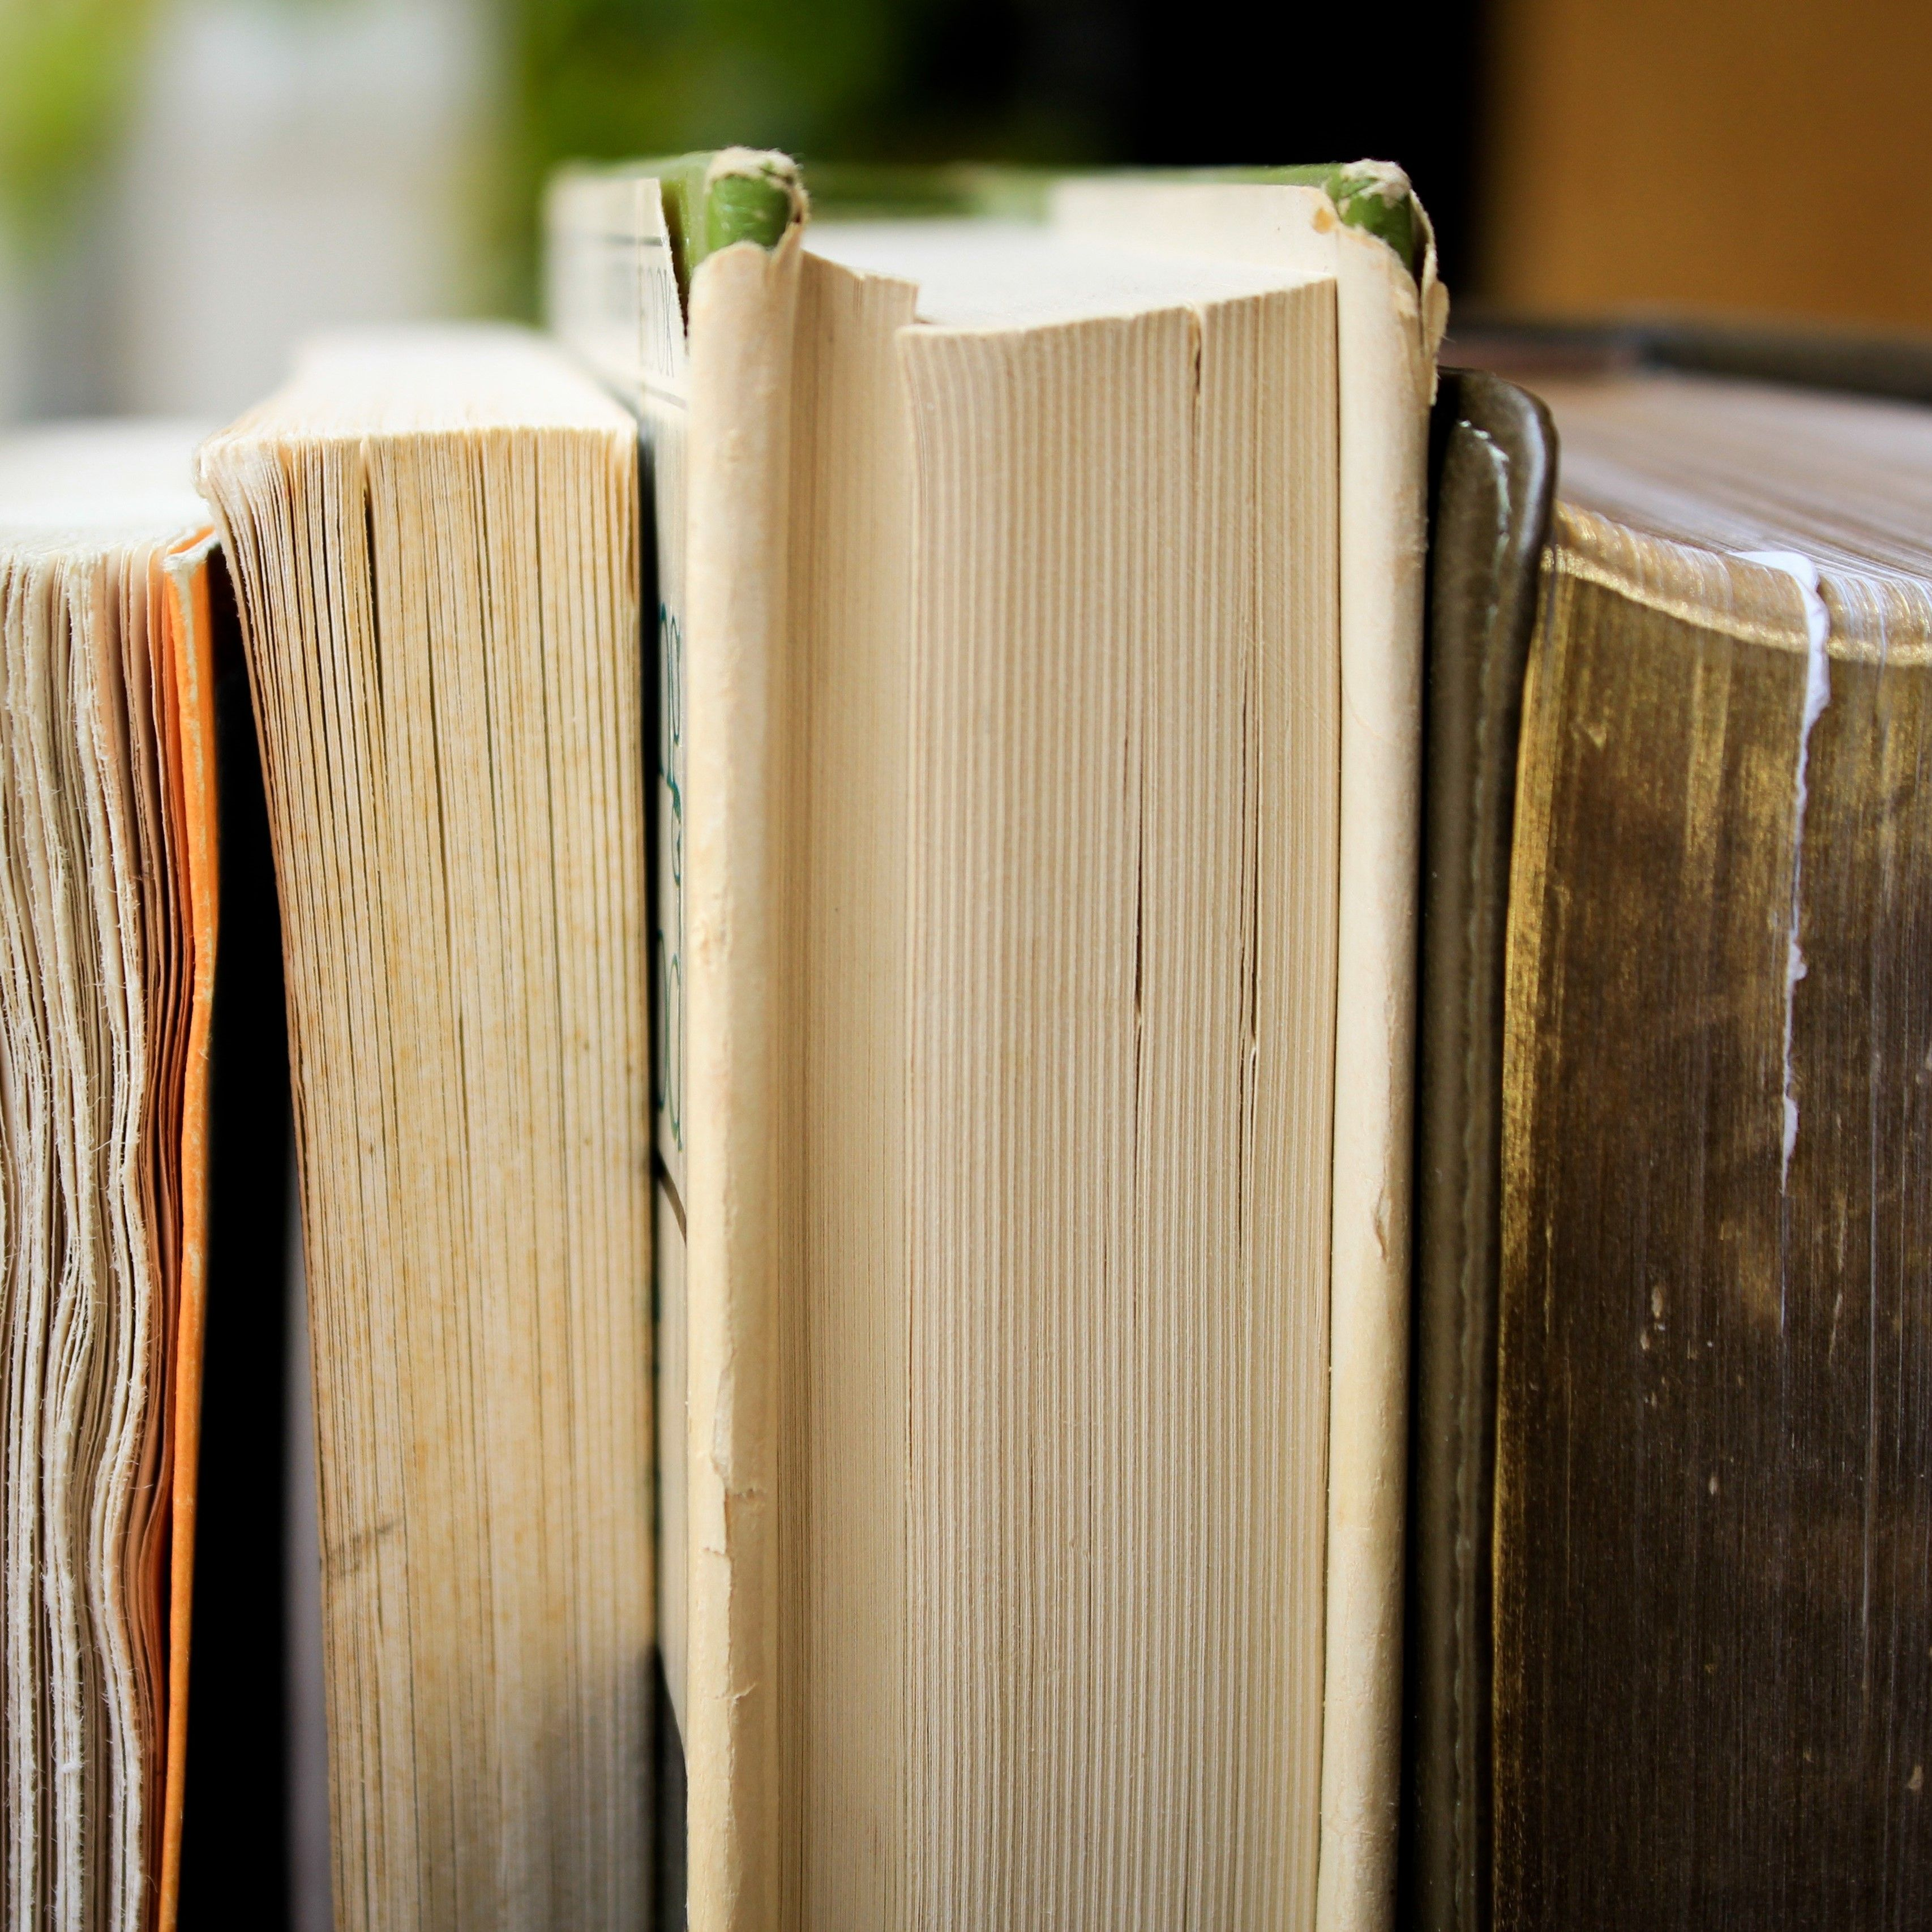 8 Affirming Books That Helped Me Love Life More